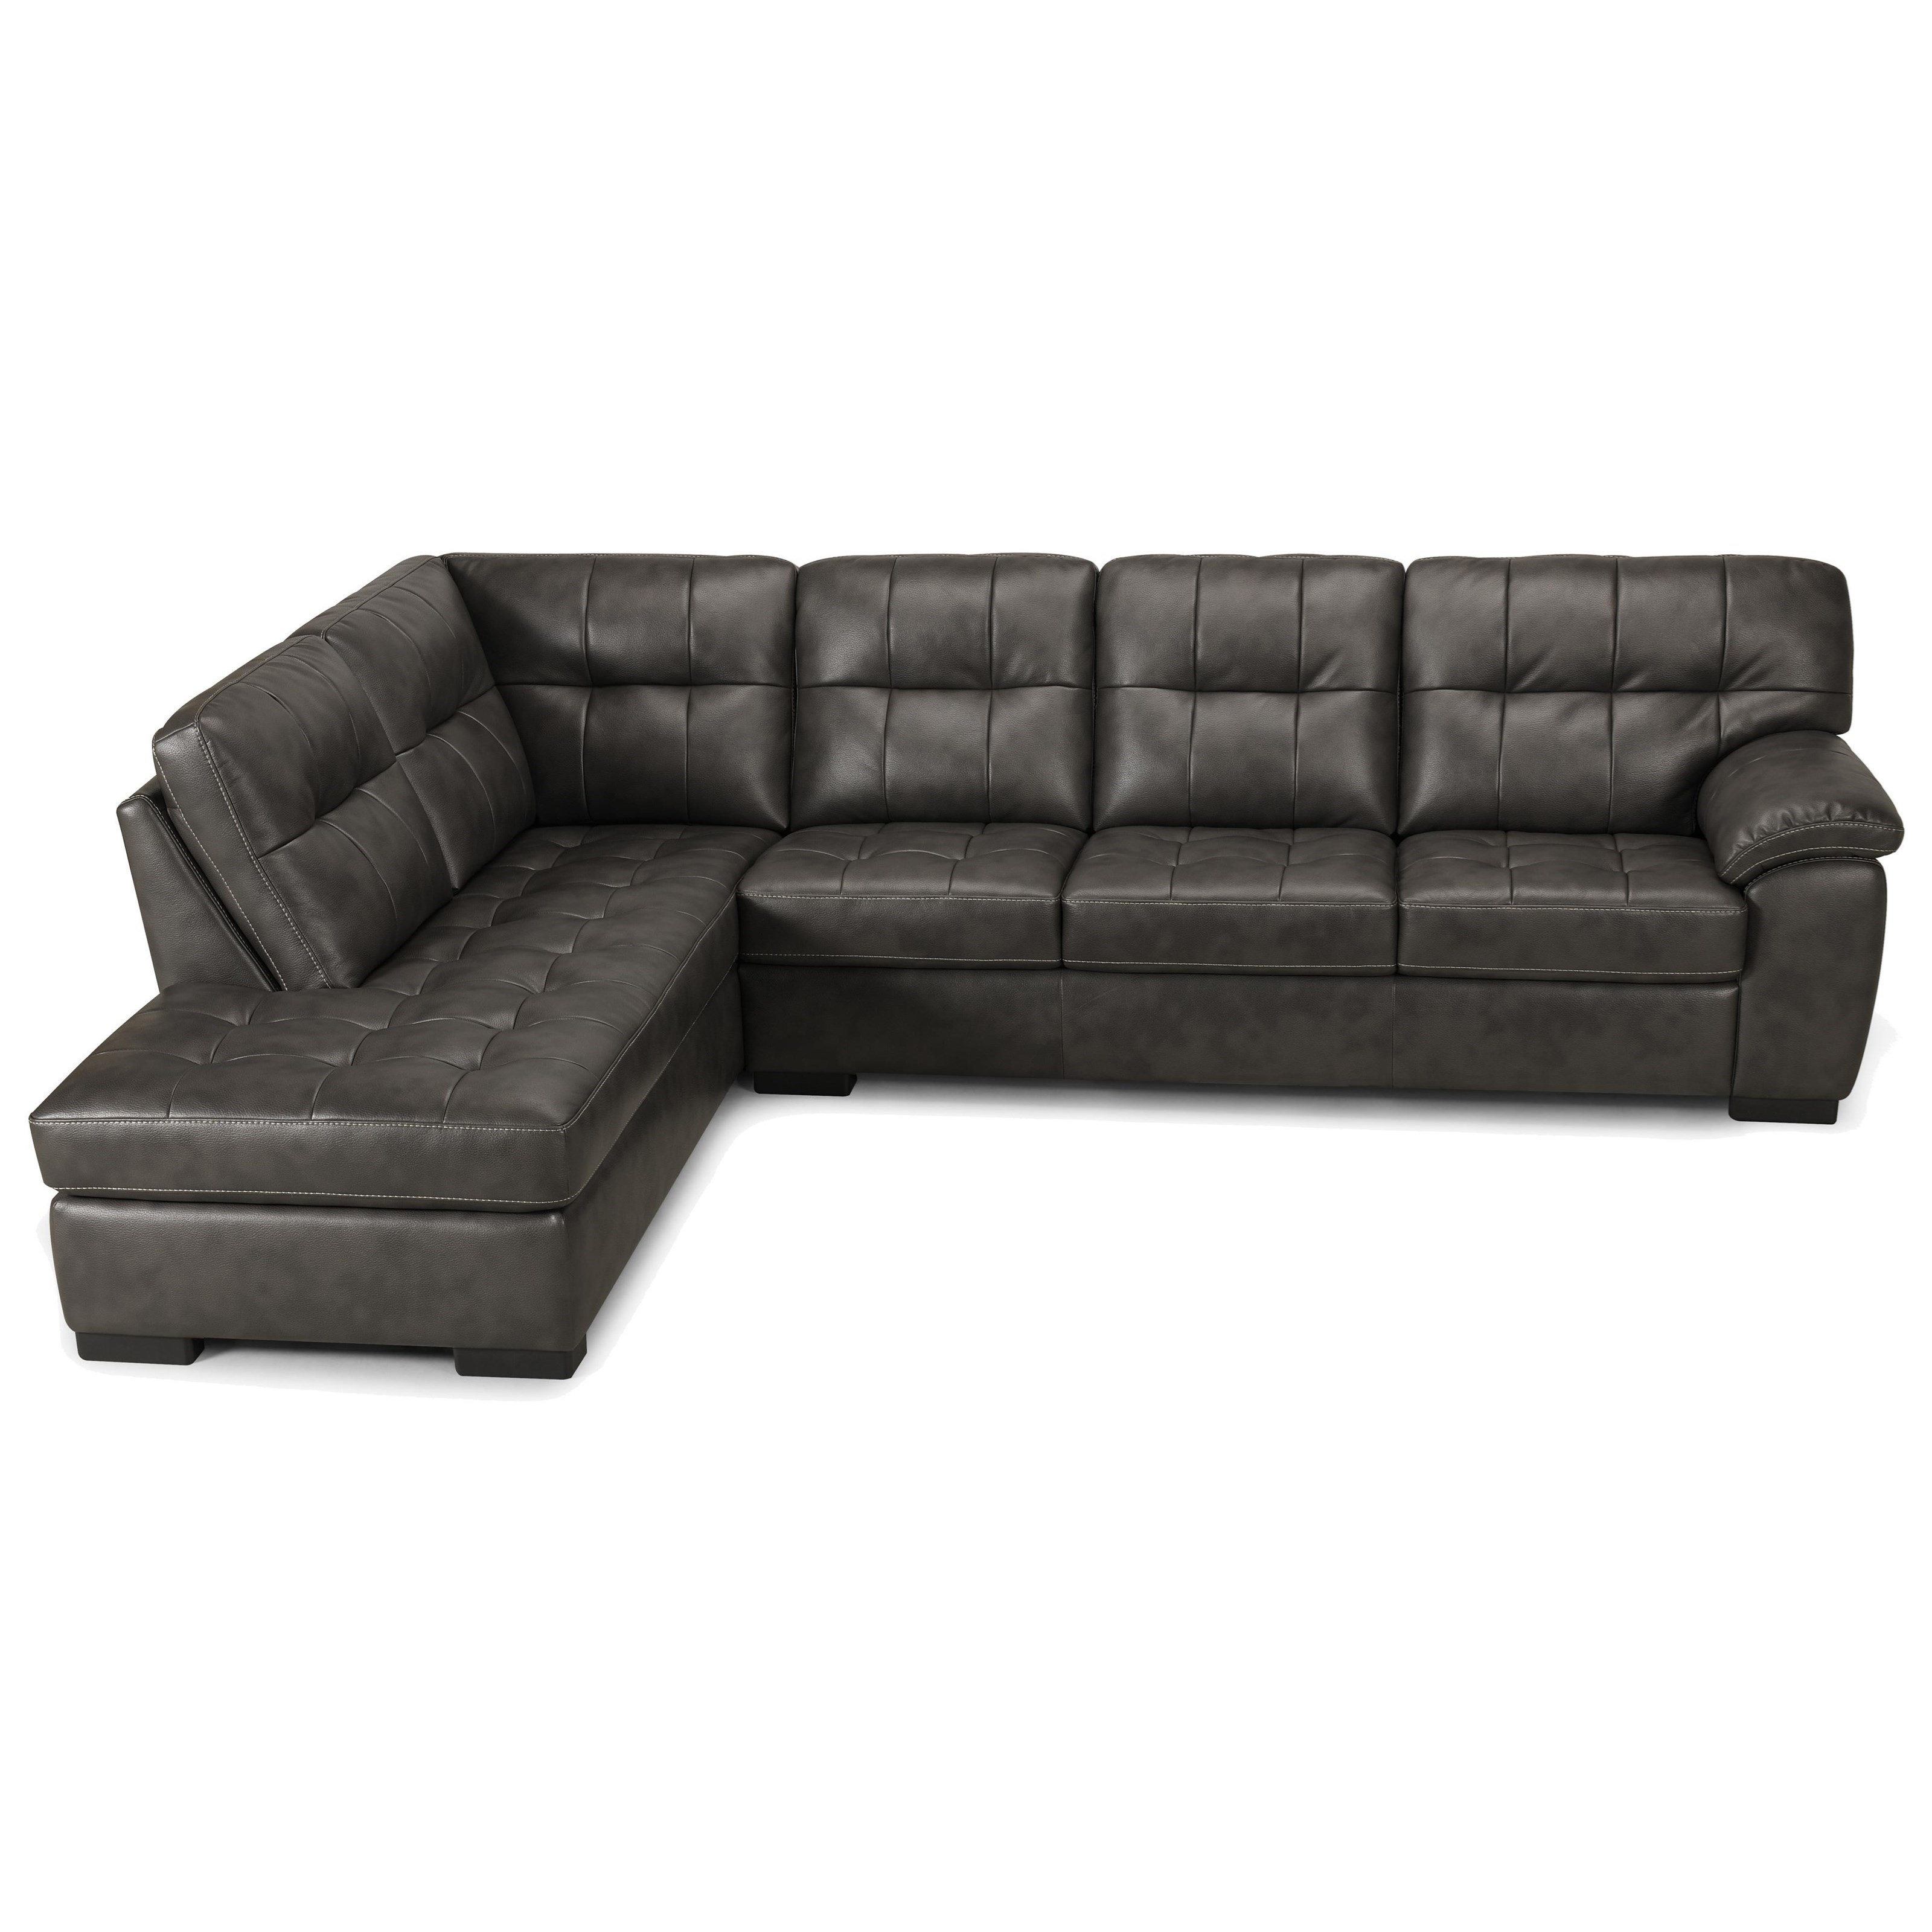 Becker 1950 3638 2 Piece Sectional - Item Number: 3638-3PR+3CSL-PEWTER